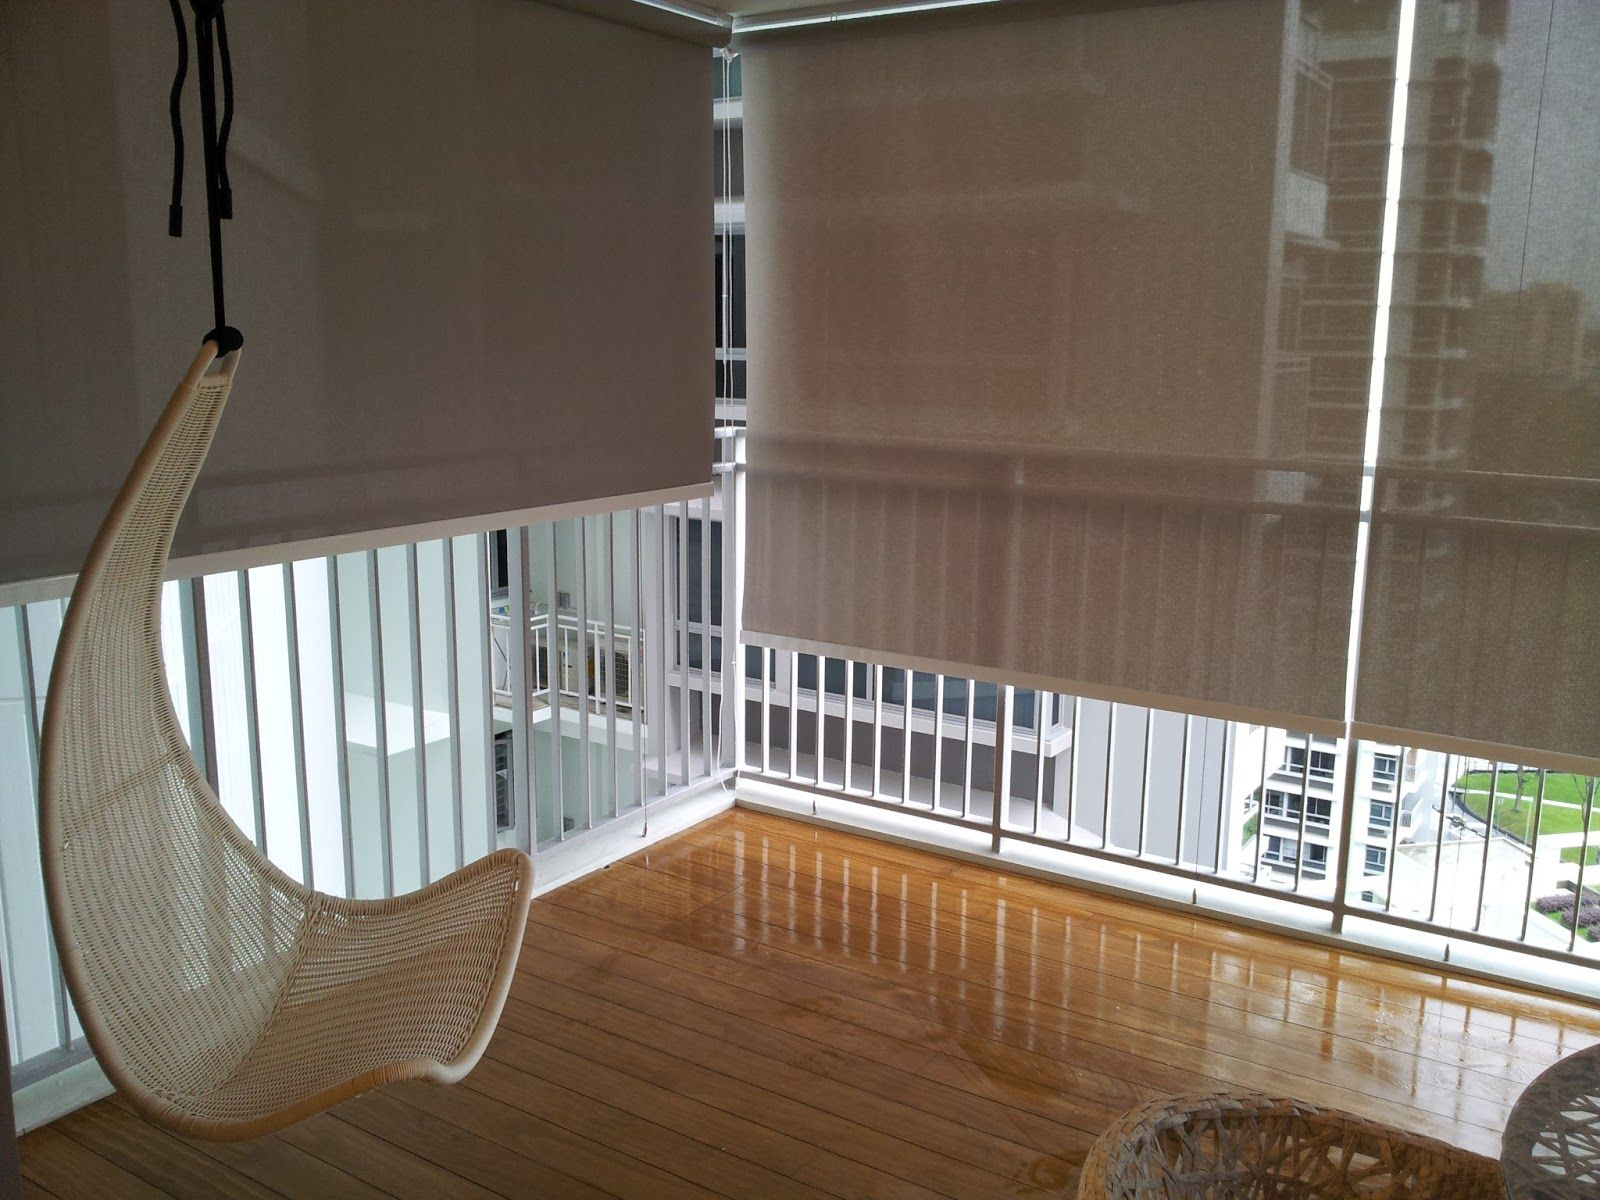 Curtain For Balcony: Balcony Blinds, Curtains